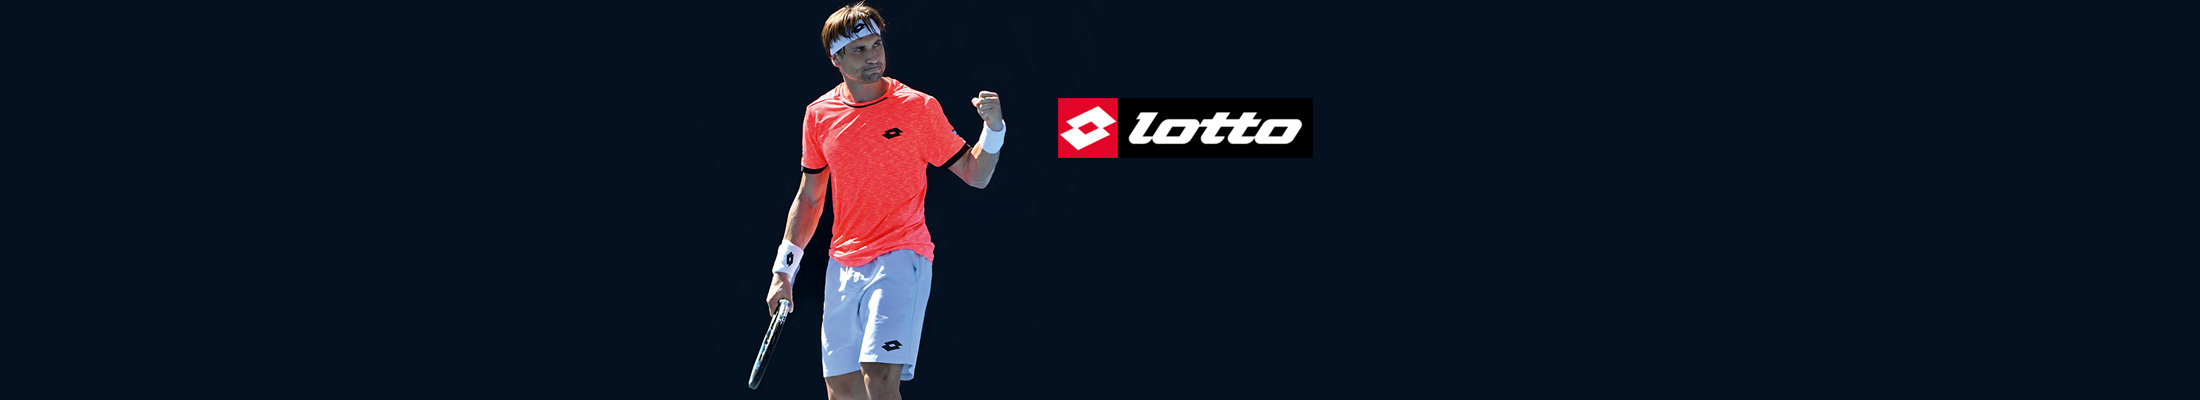 Men's Tennis apparel Lotto